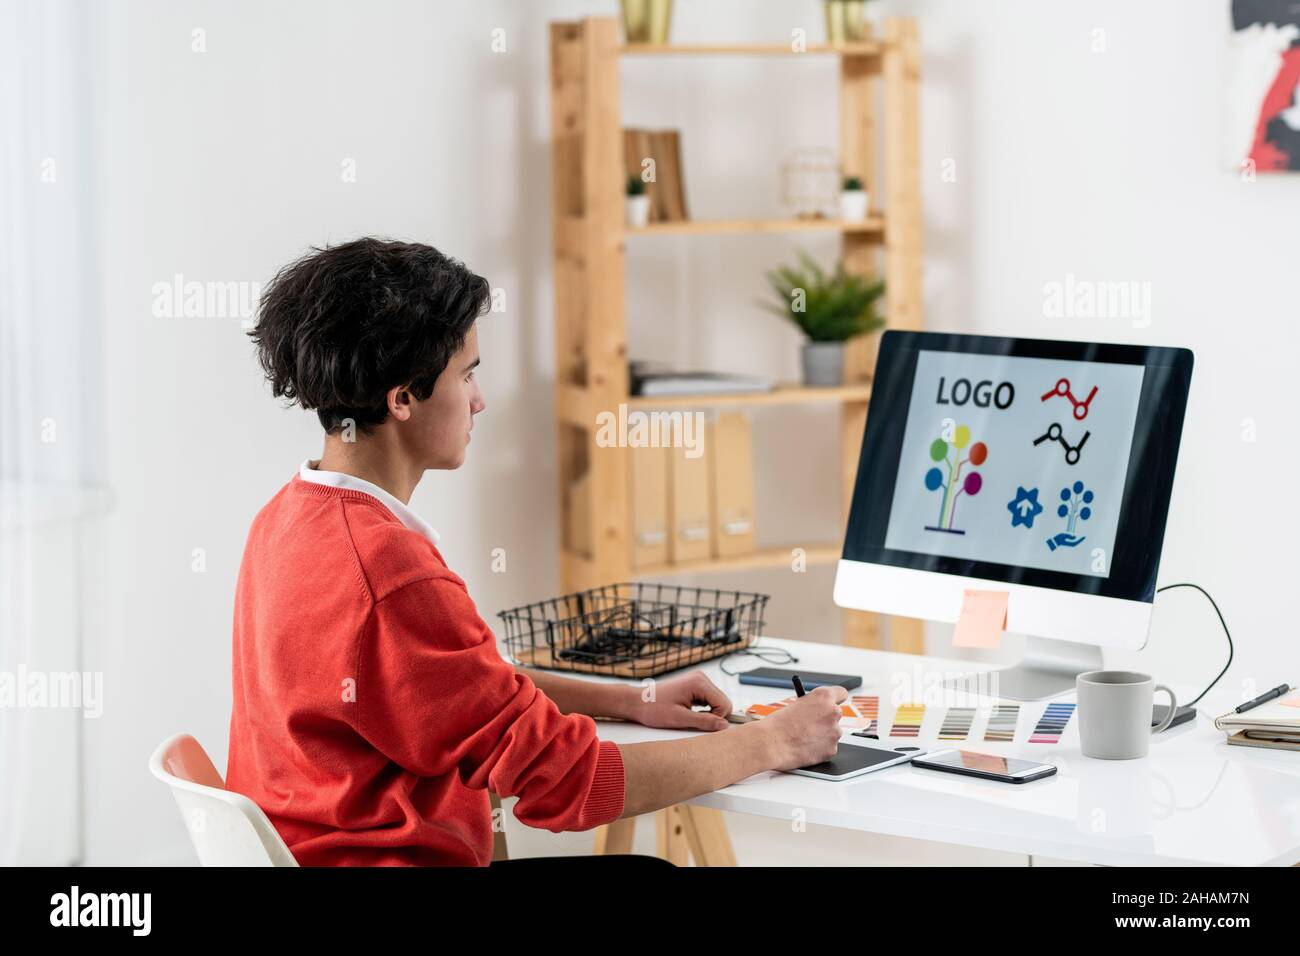 Contemporary Web Designer With Graphics Tablet Drawing New Logo By Workplace Stock Photo Alamy